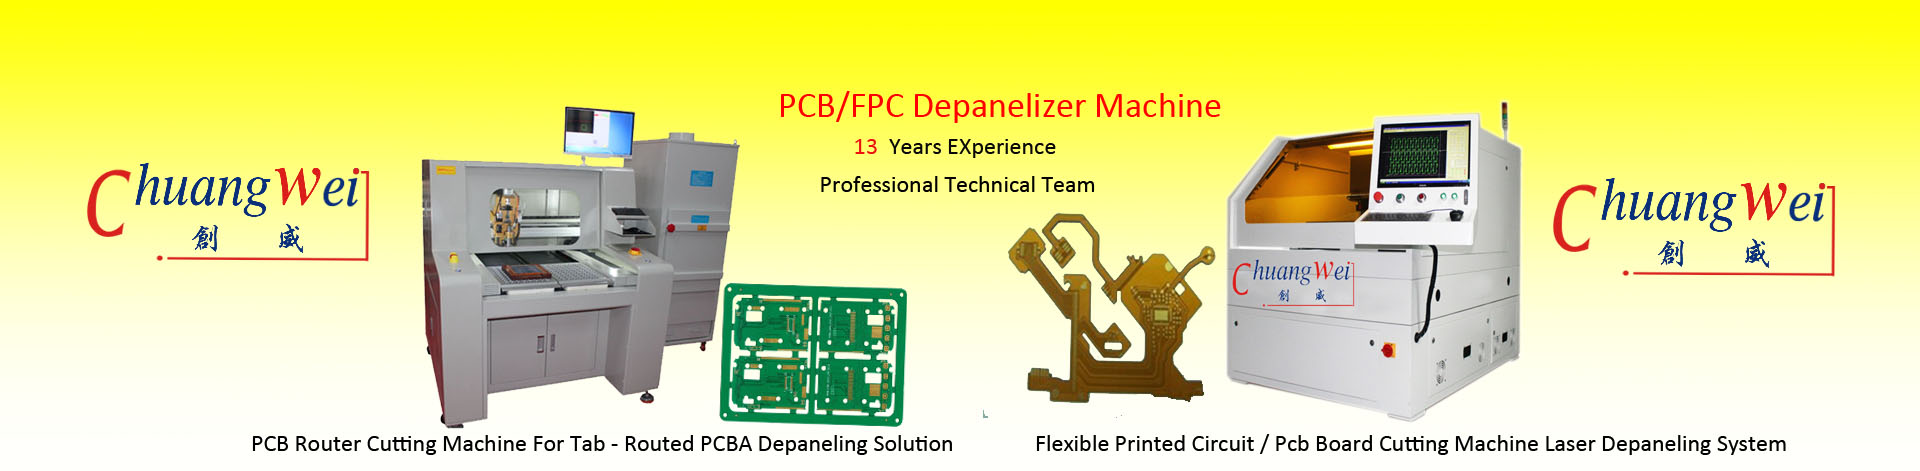 Depaneling Pcb Fpc Laser Separatingpcb Cutting For Led Depanel Machine Pcba Printed Circuit Board Is A Special Router Depanelizer